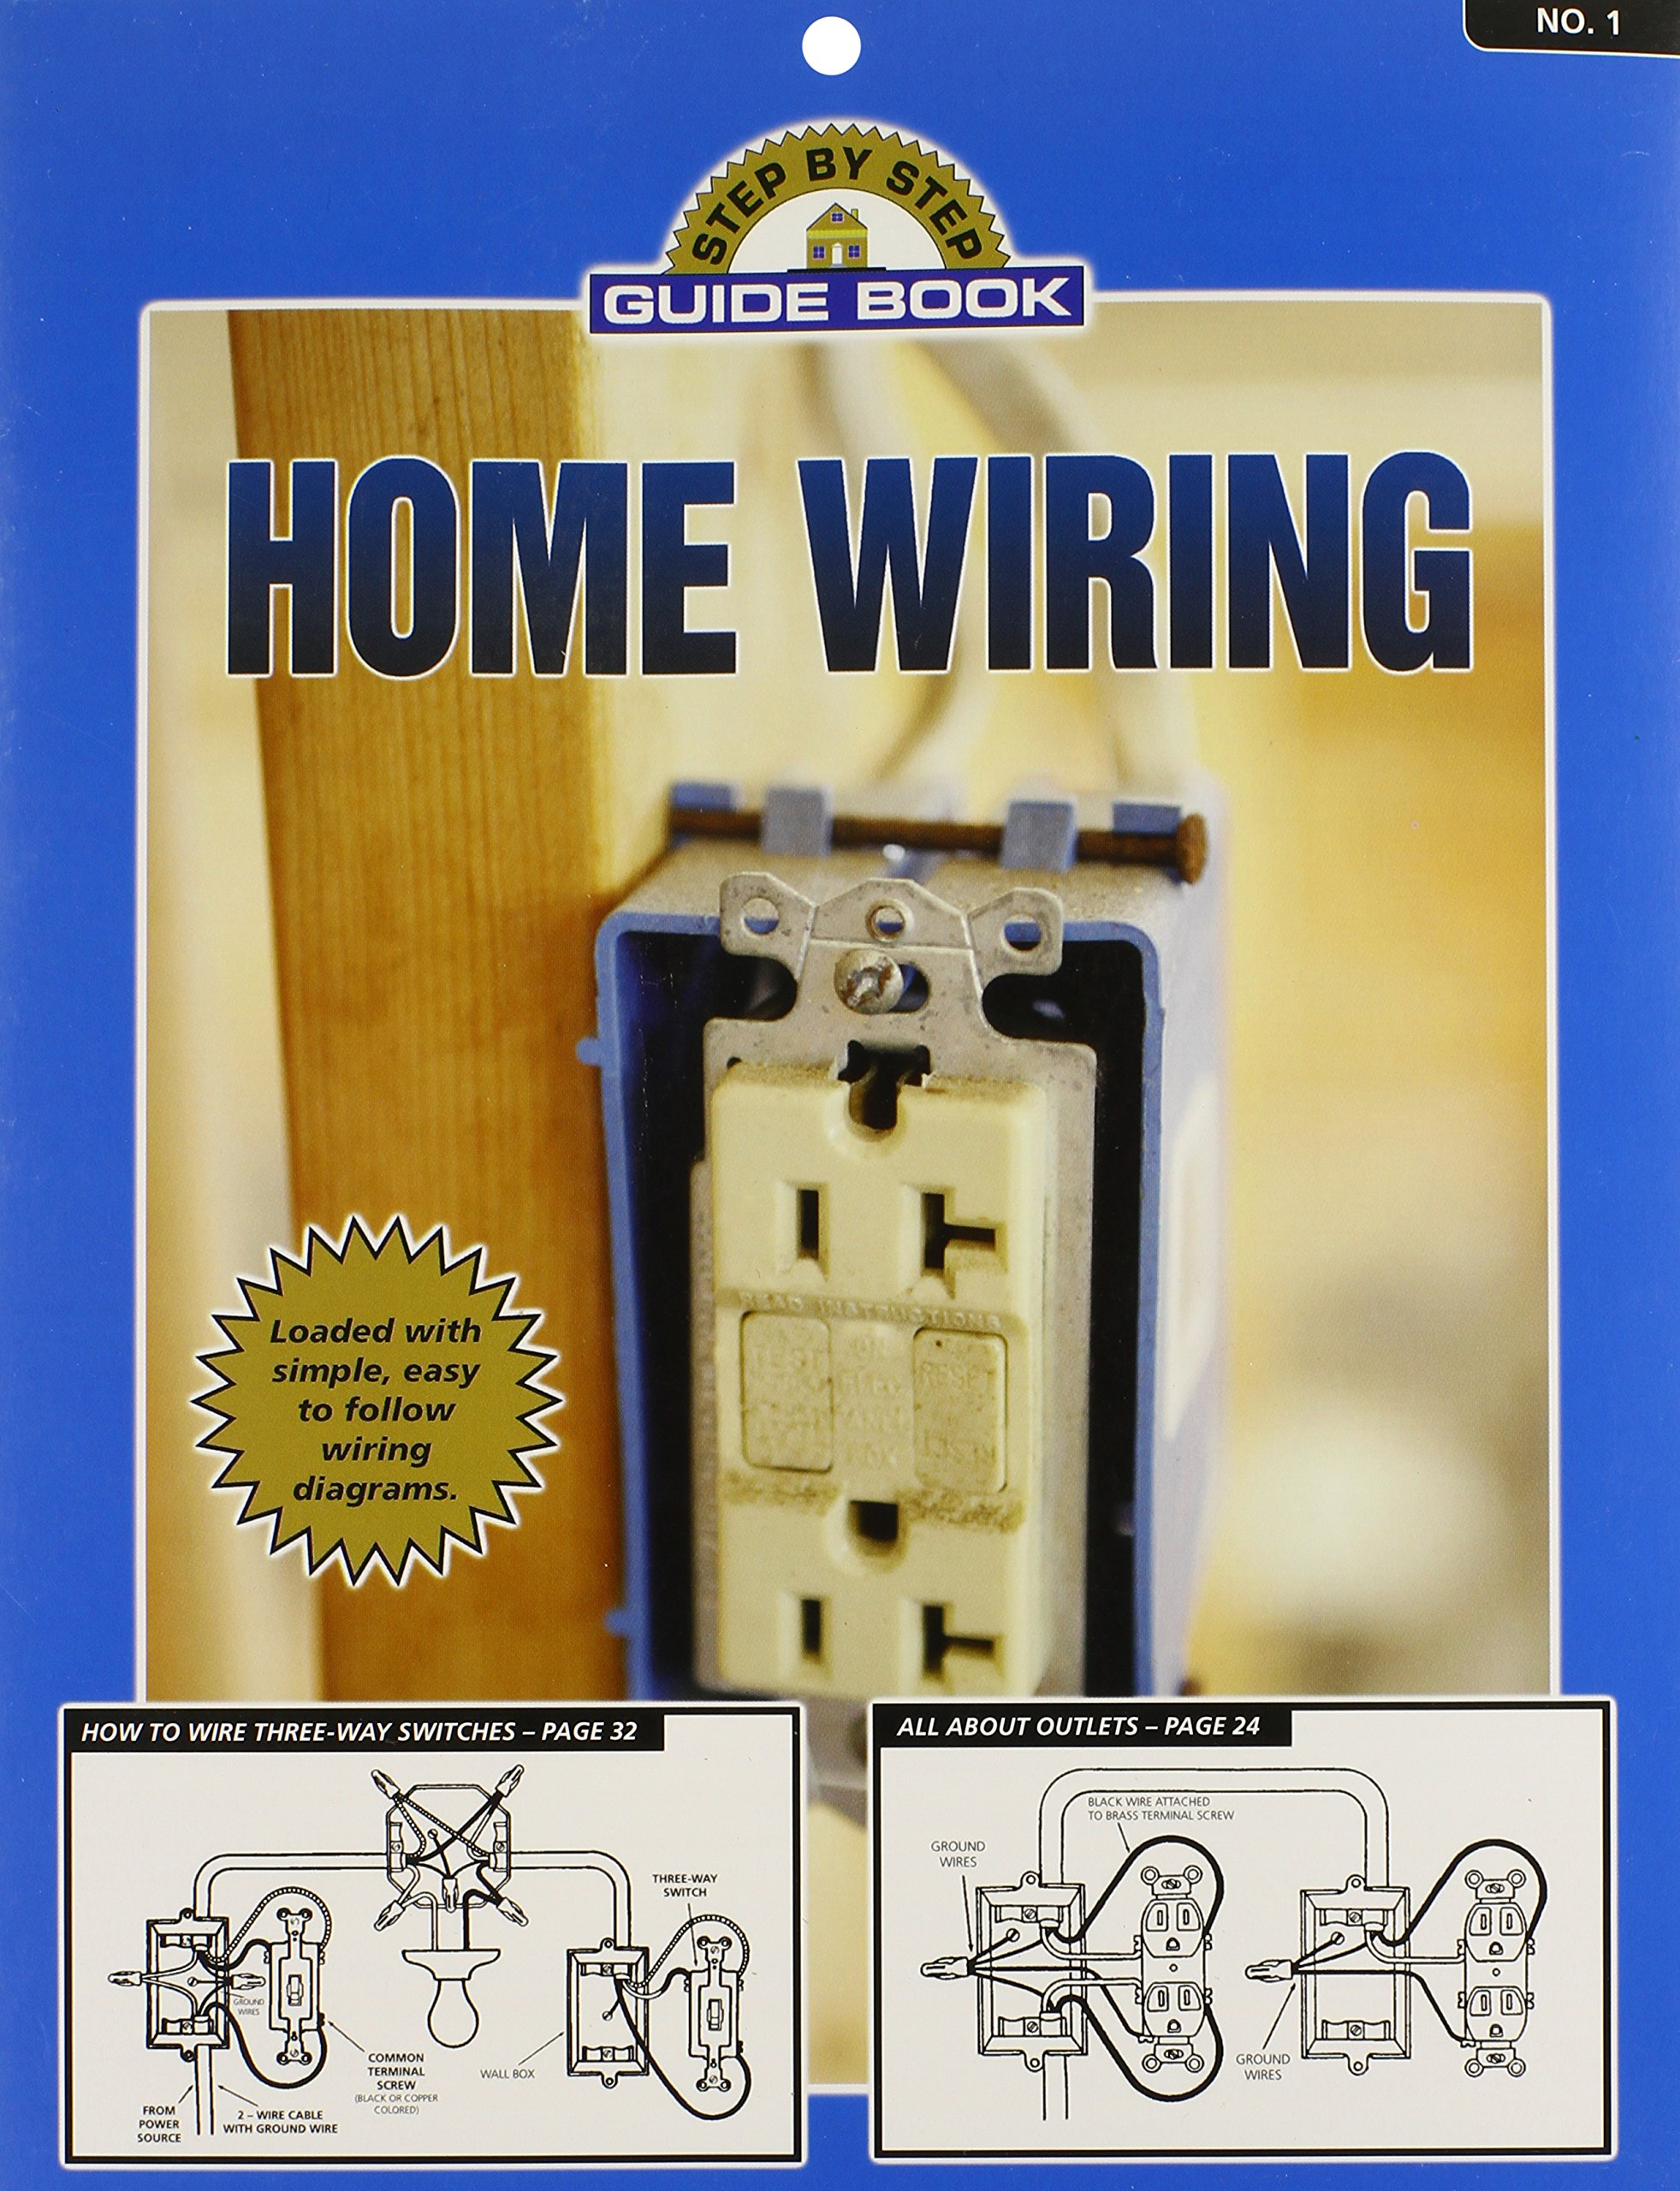 Step By Guide Book On Home Wiring Ray Mcreynolds Elaine Basic Electrical Outlet Shane E Richins 9780961920104 Books